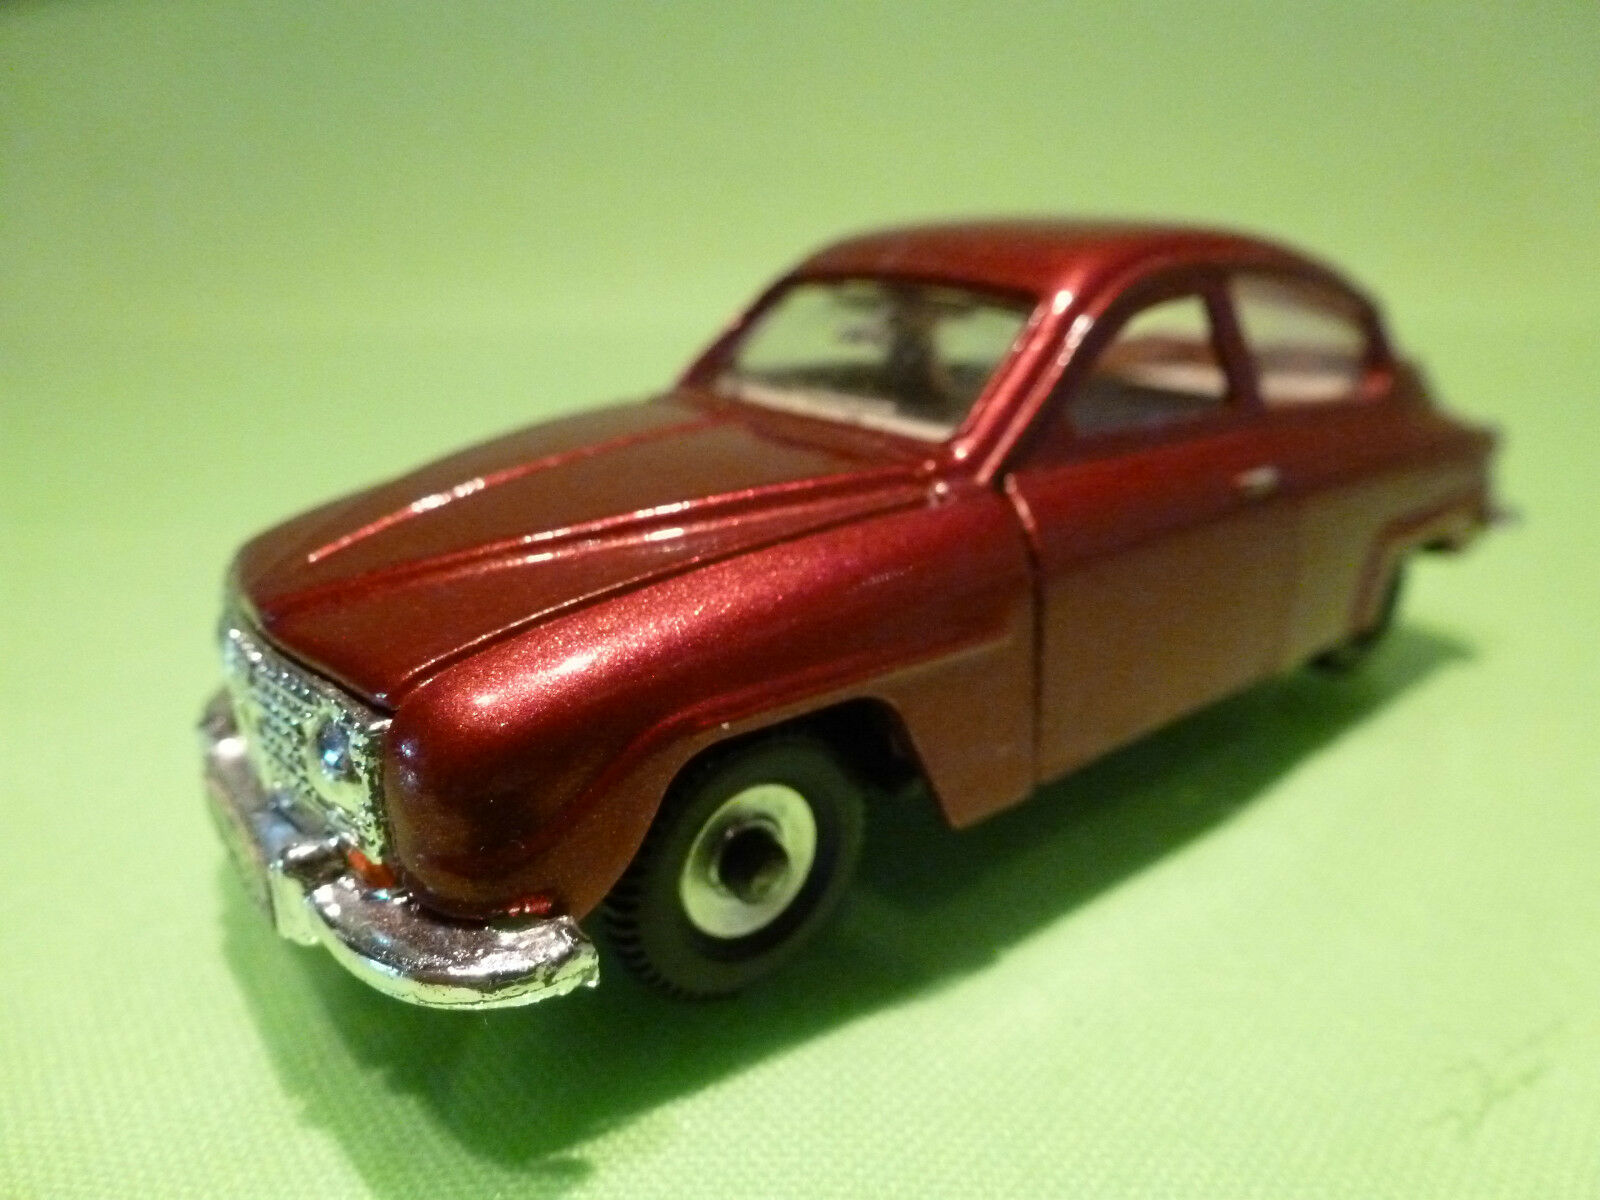 DINKY TOYS 156 SAAB 96 1 43 - PERFECT RESTAURATION CODE 3 - VERY GOOD